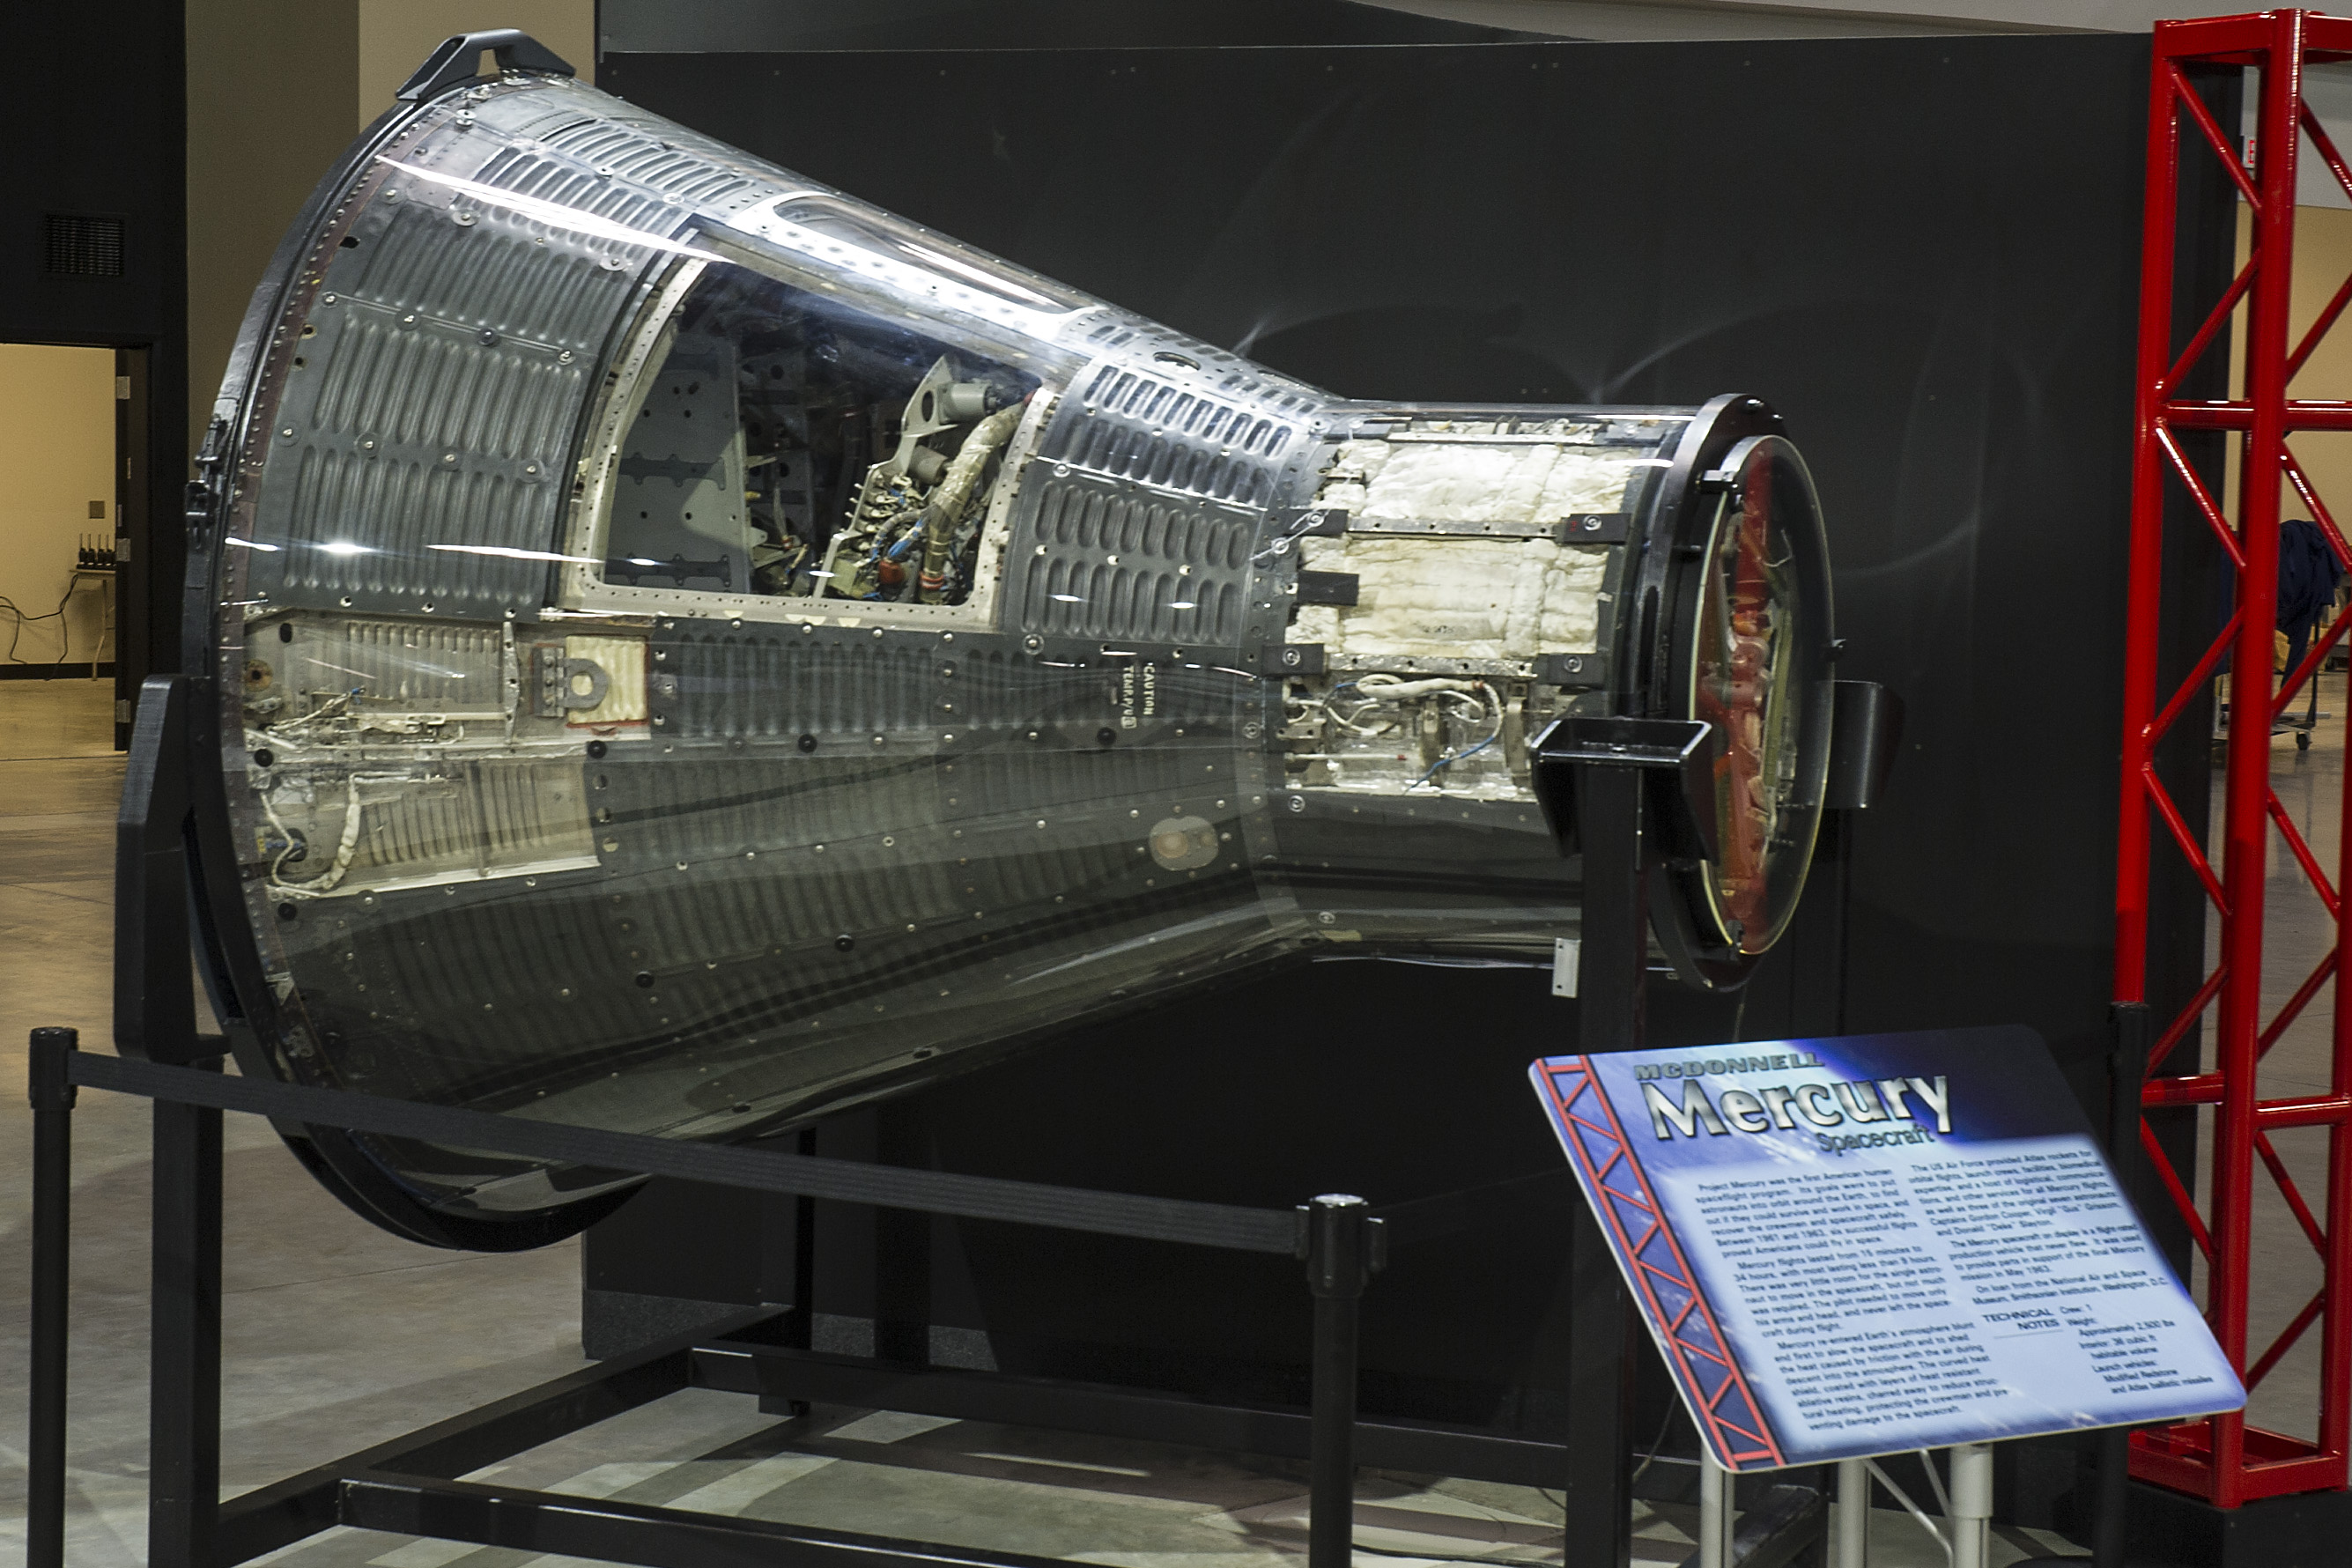 Mercury Spacecraft > National Museum of the US Air Force ...